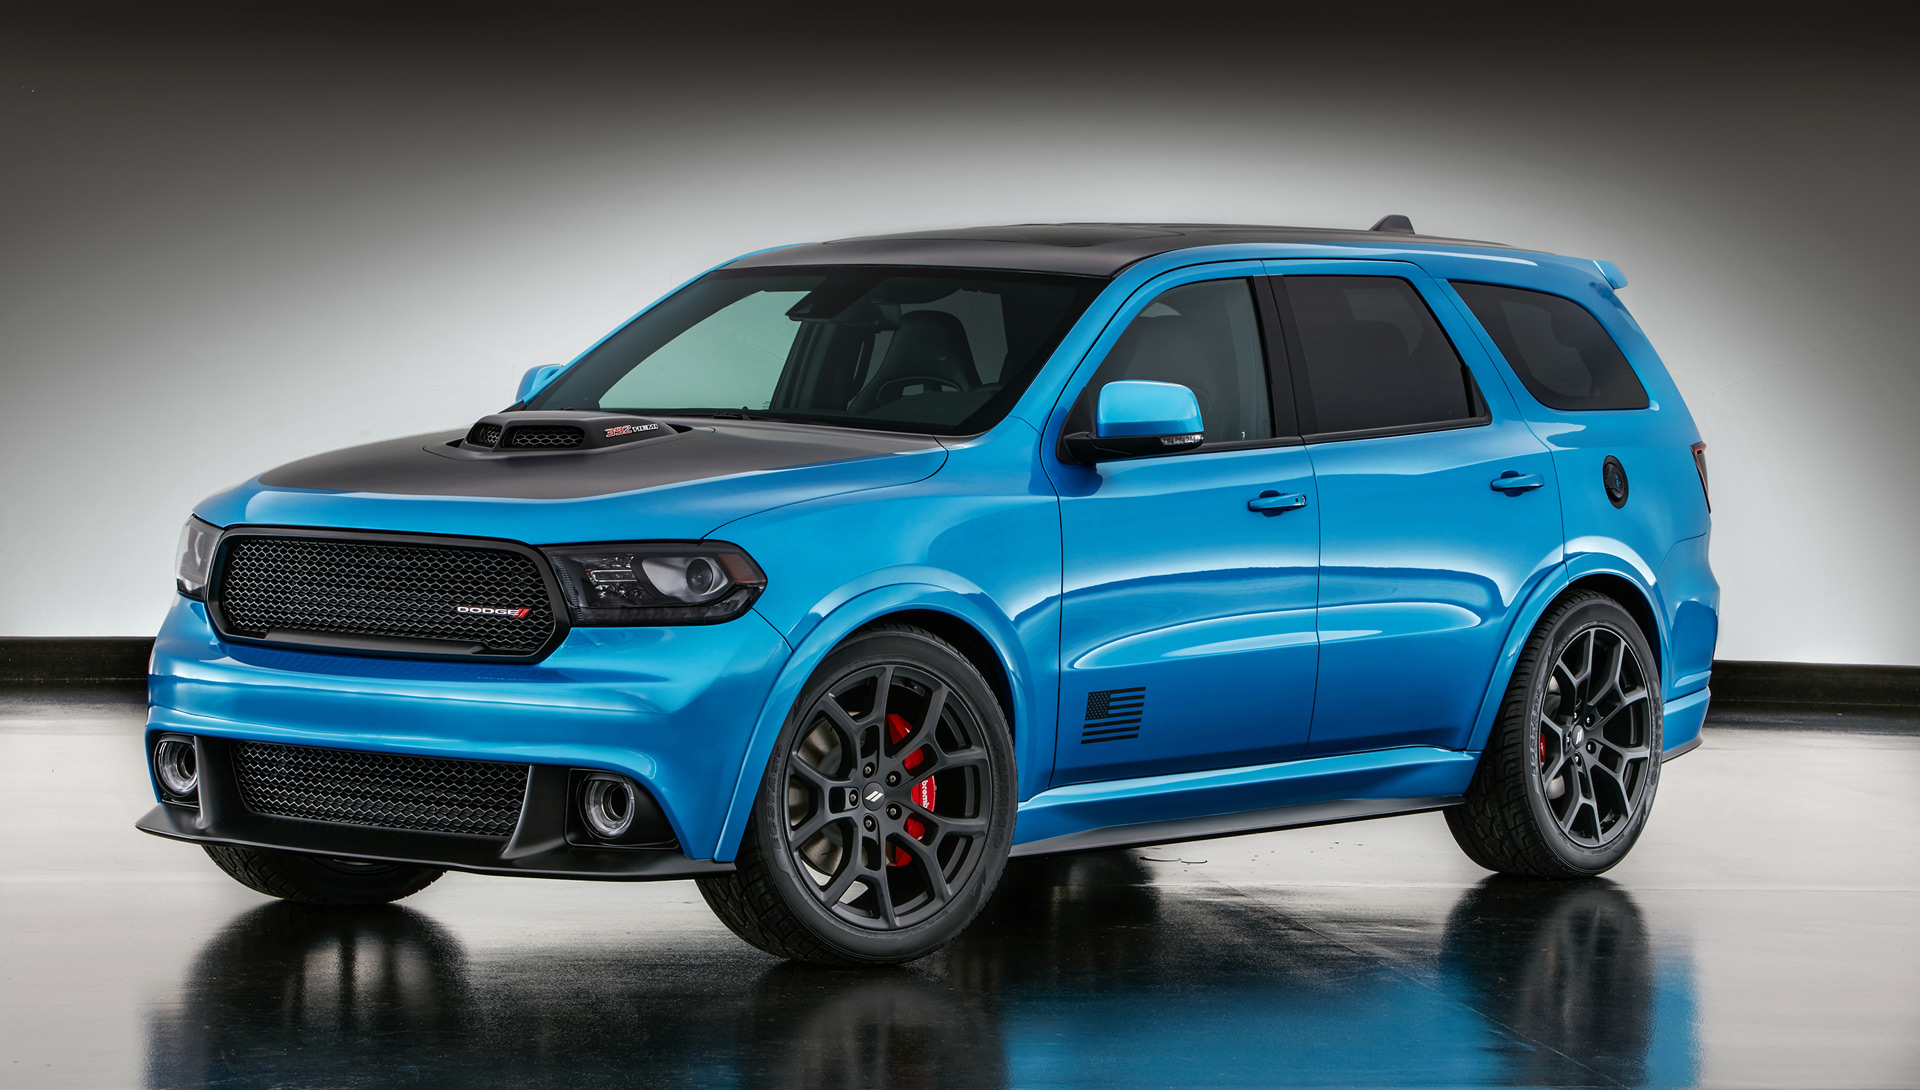 2018 dodge srt durango.  durango dodge durango srt concept fisker emotion mclaren p14 spy shots car news  headlines with 2018 dodge srt durango